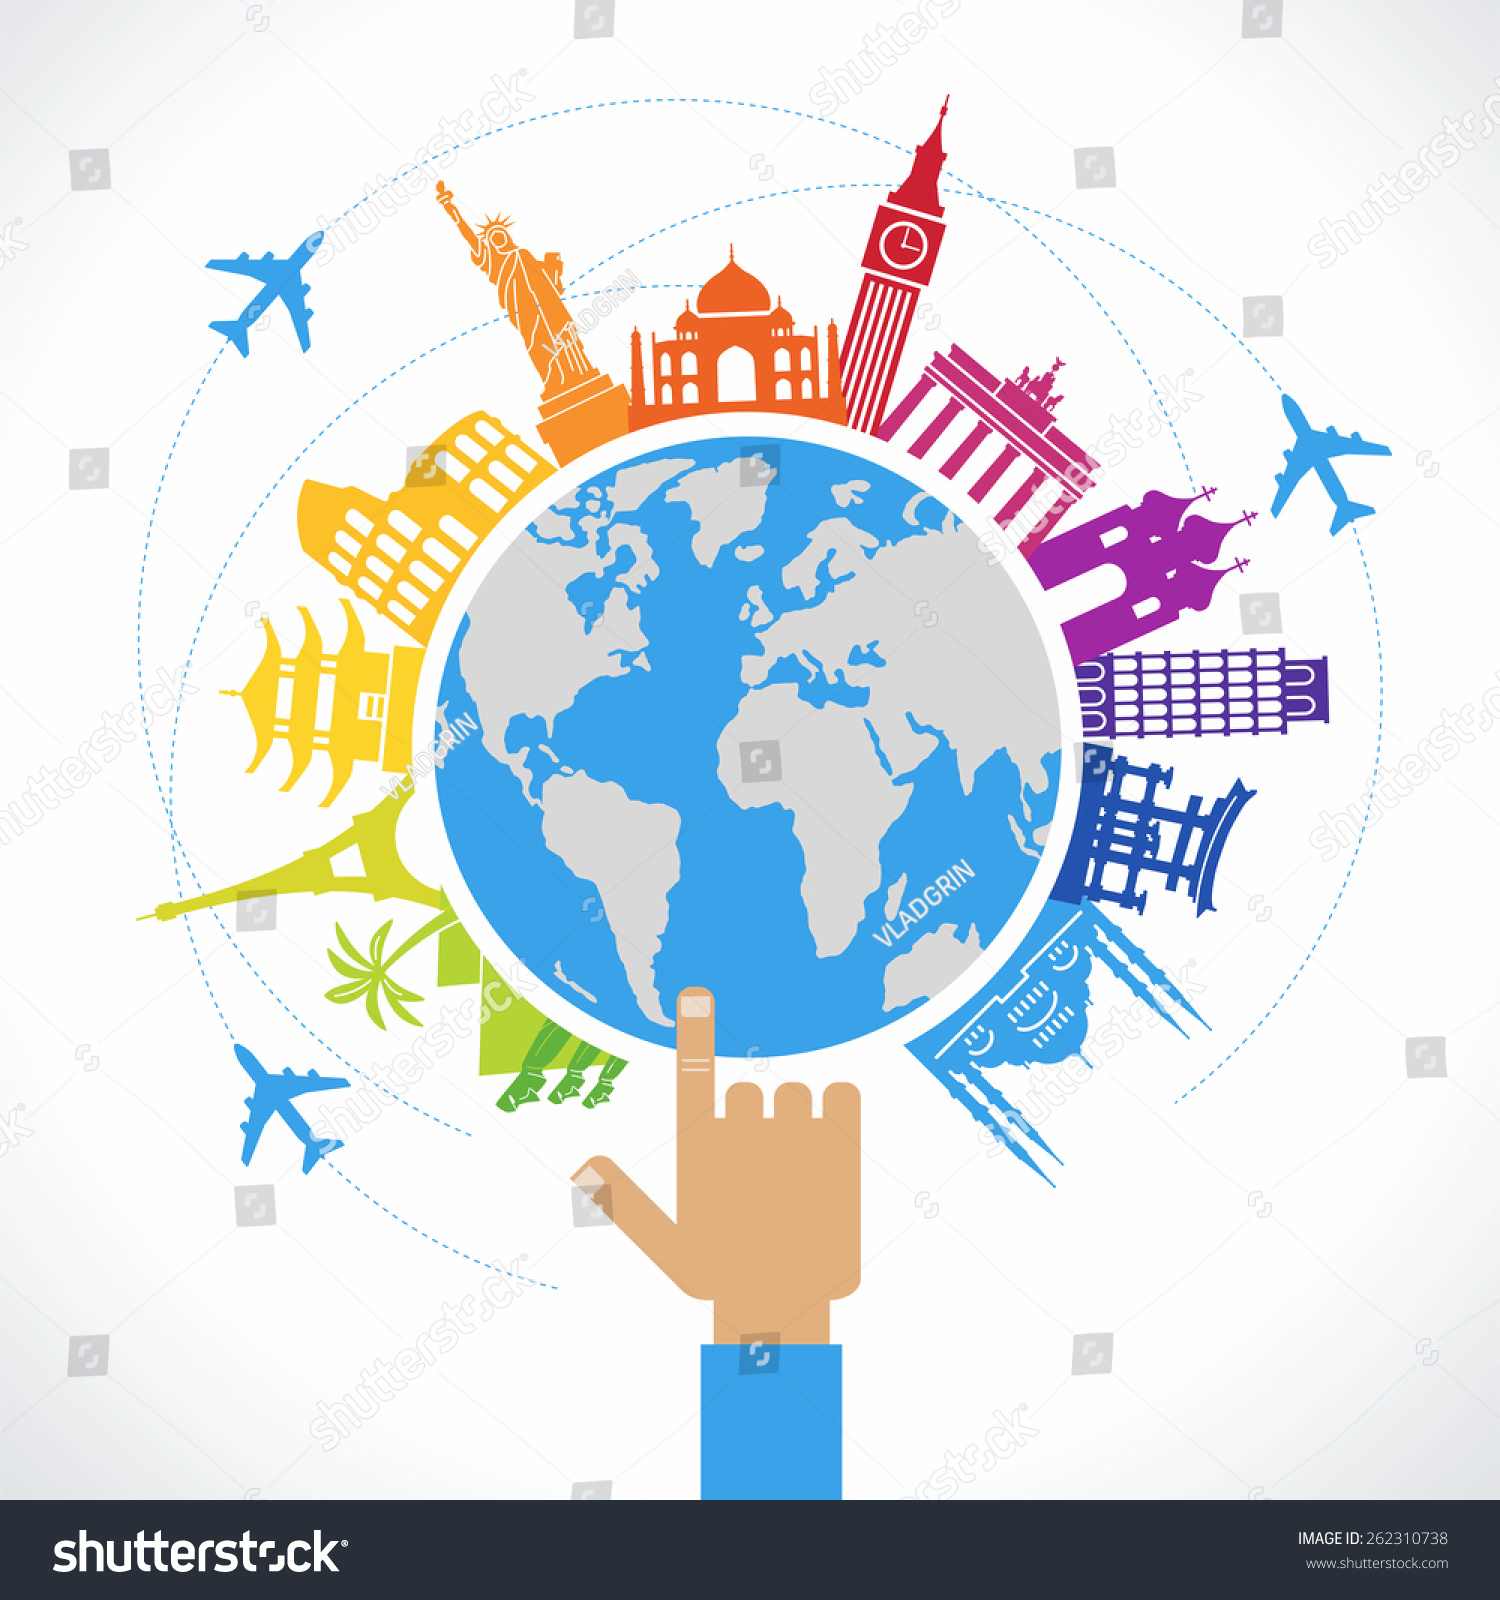 Travel concept flat design travel background stock vector 262310738 travel concept flat design travel background the hand of man shows a world map gumiabroncs Choice Image